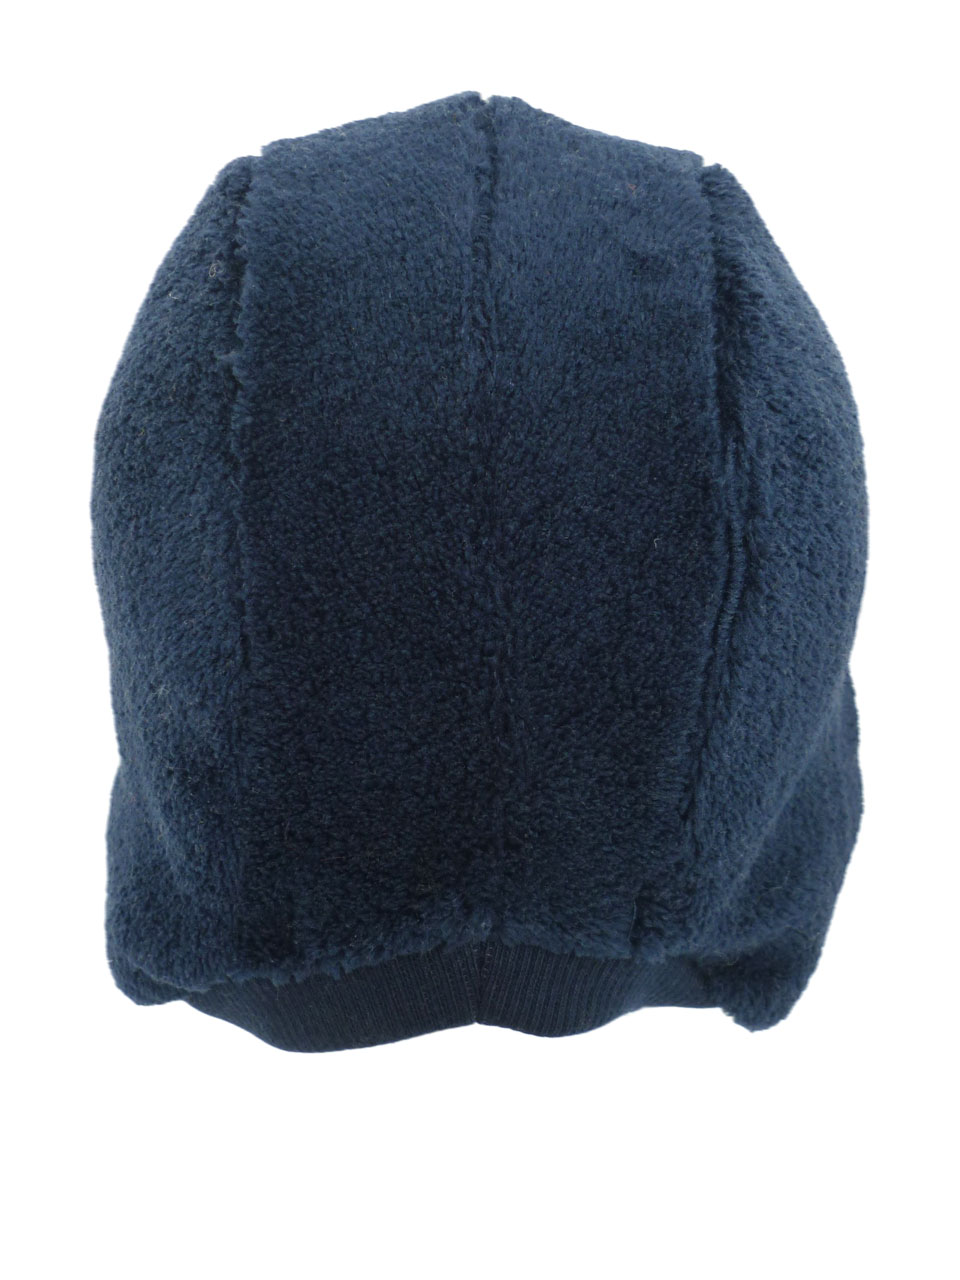 Hat speedy plain fur - dblue